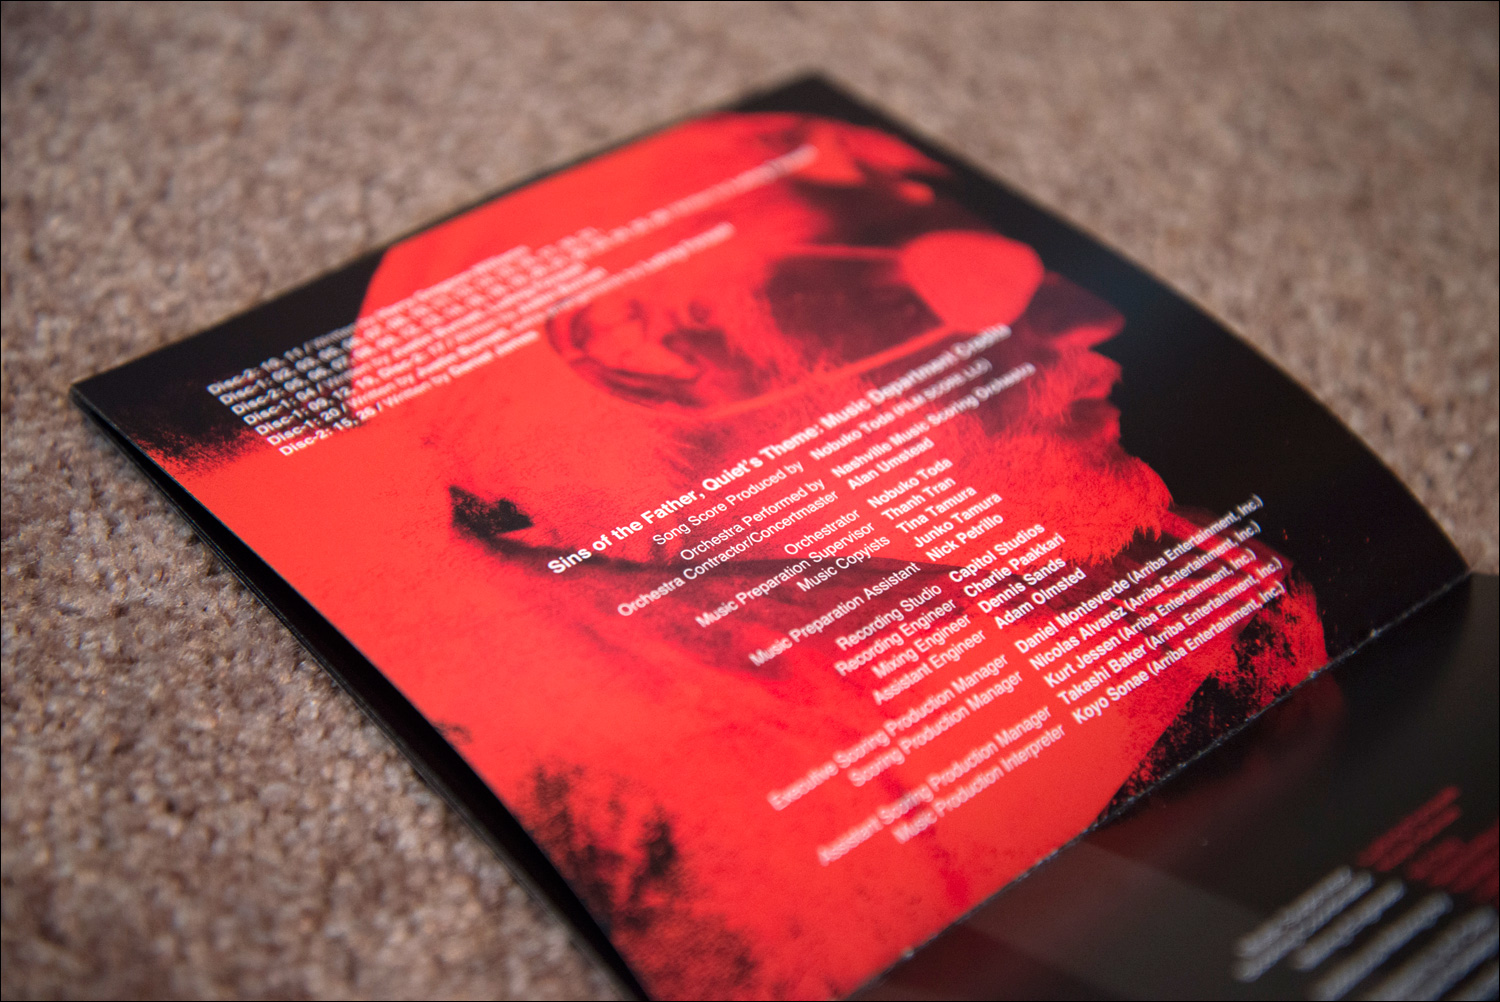 Metal-Gear-Solid-V-Original-Soundtrack-Booklet-Credits